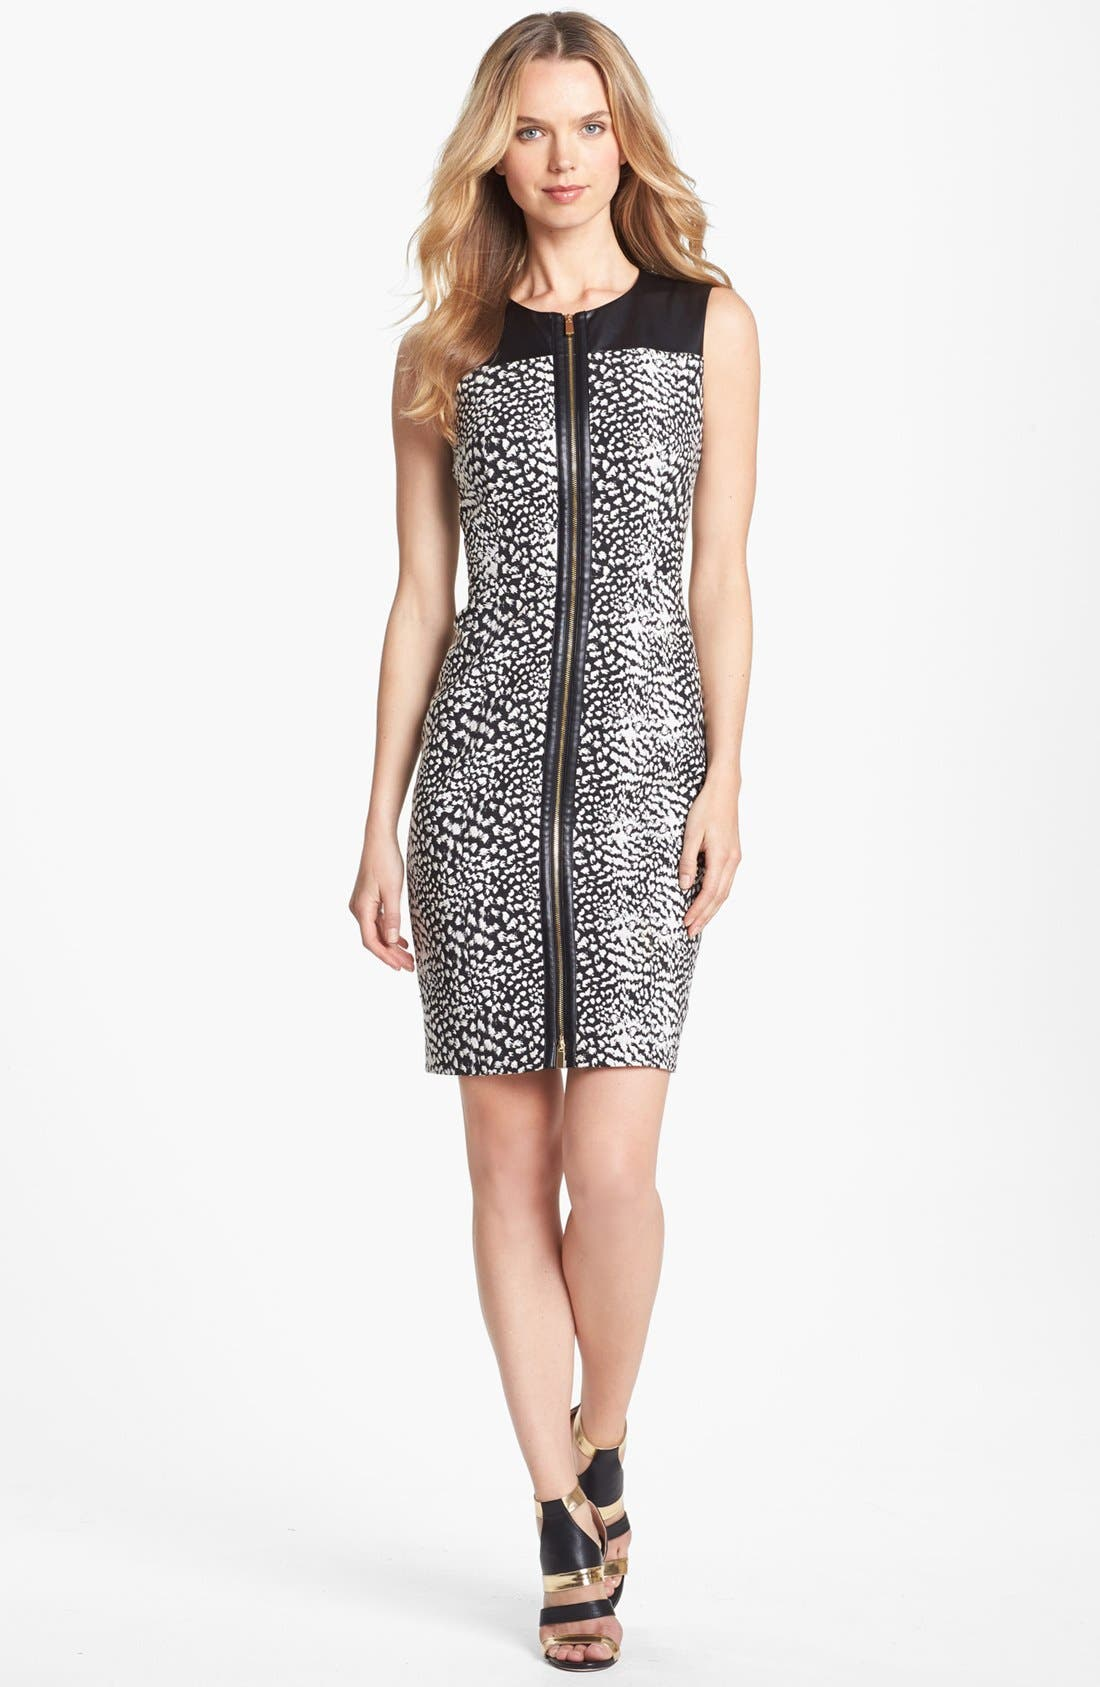 Alternate Image 1 Selected - Vince Camuto Faux Leather Detail Print Zip Front Dress